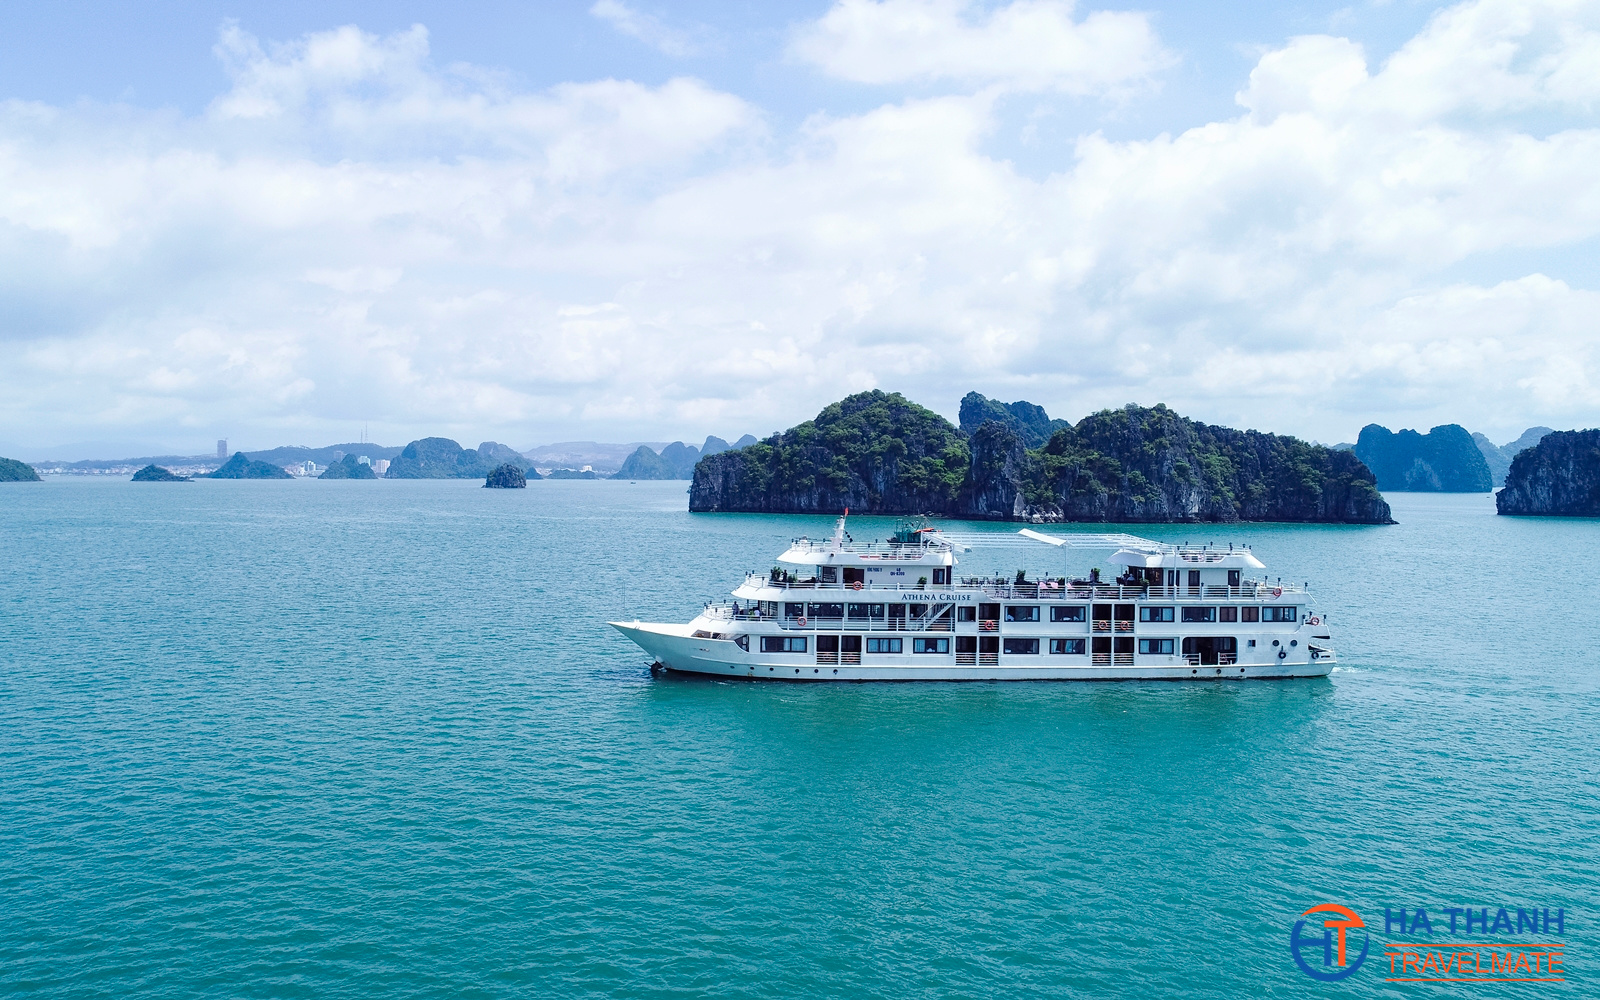 Athena Luxury Cruise 3 days/2 nights